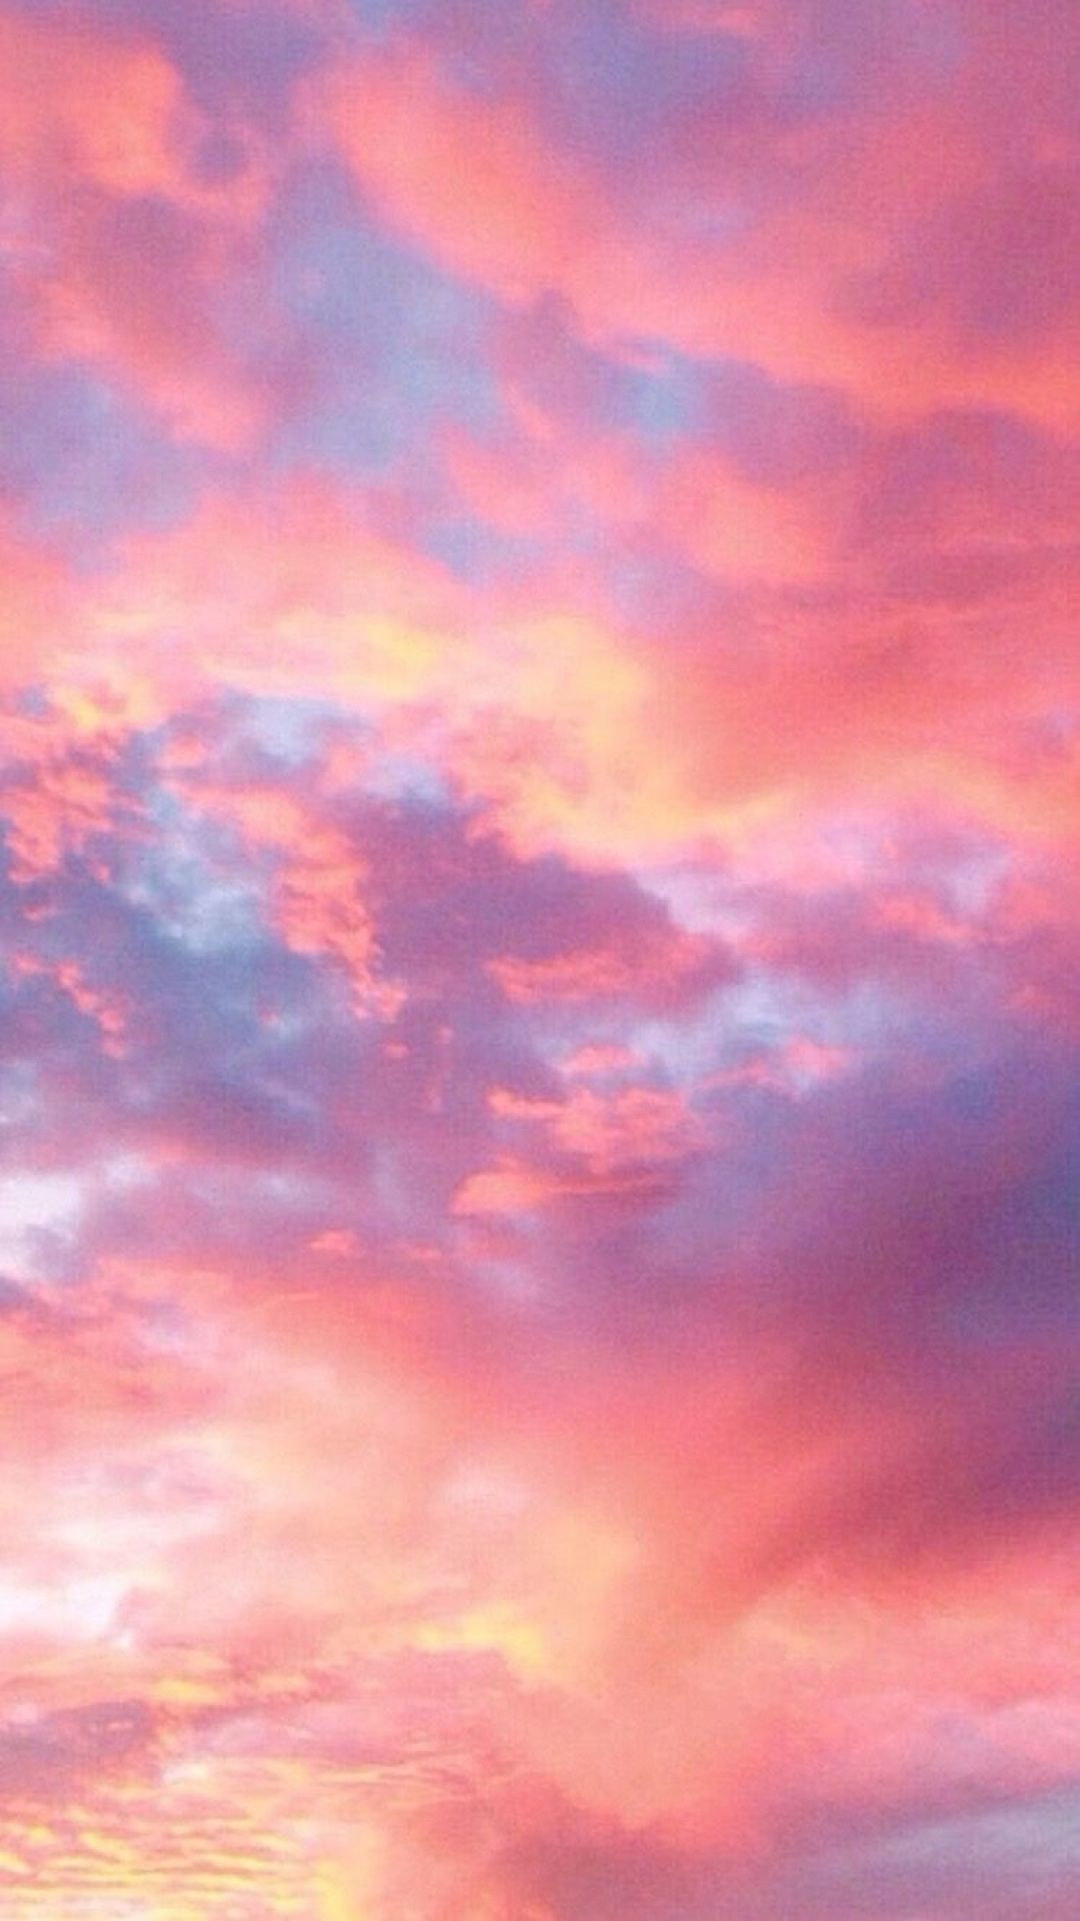 Clouds Aesthetic Android Iphone Desktop Hd Backgrounds Wallpapers 1080p 4k 102799 Hdwallp Iphone Wallpaper Sky Pink Clouds Wallpaper Sky Aesthetic